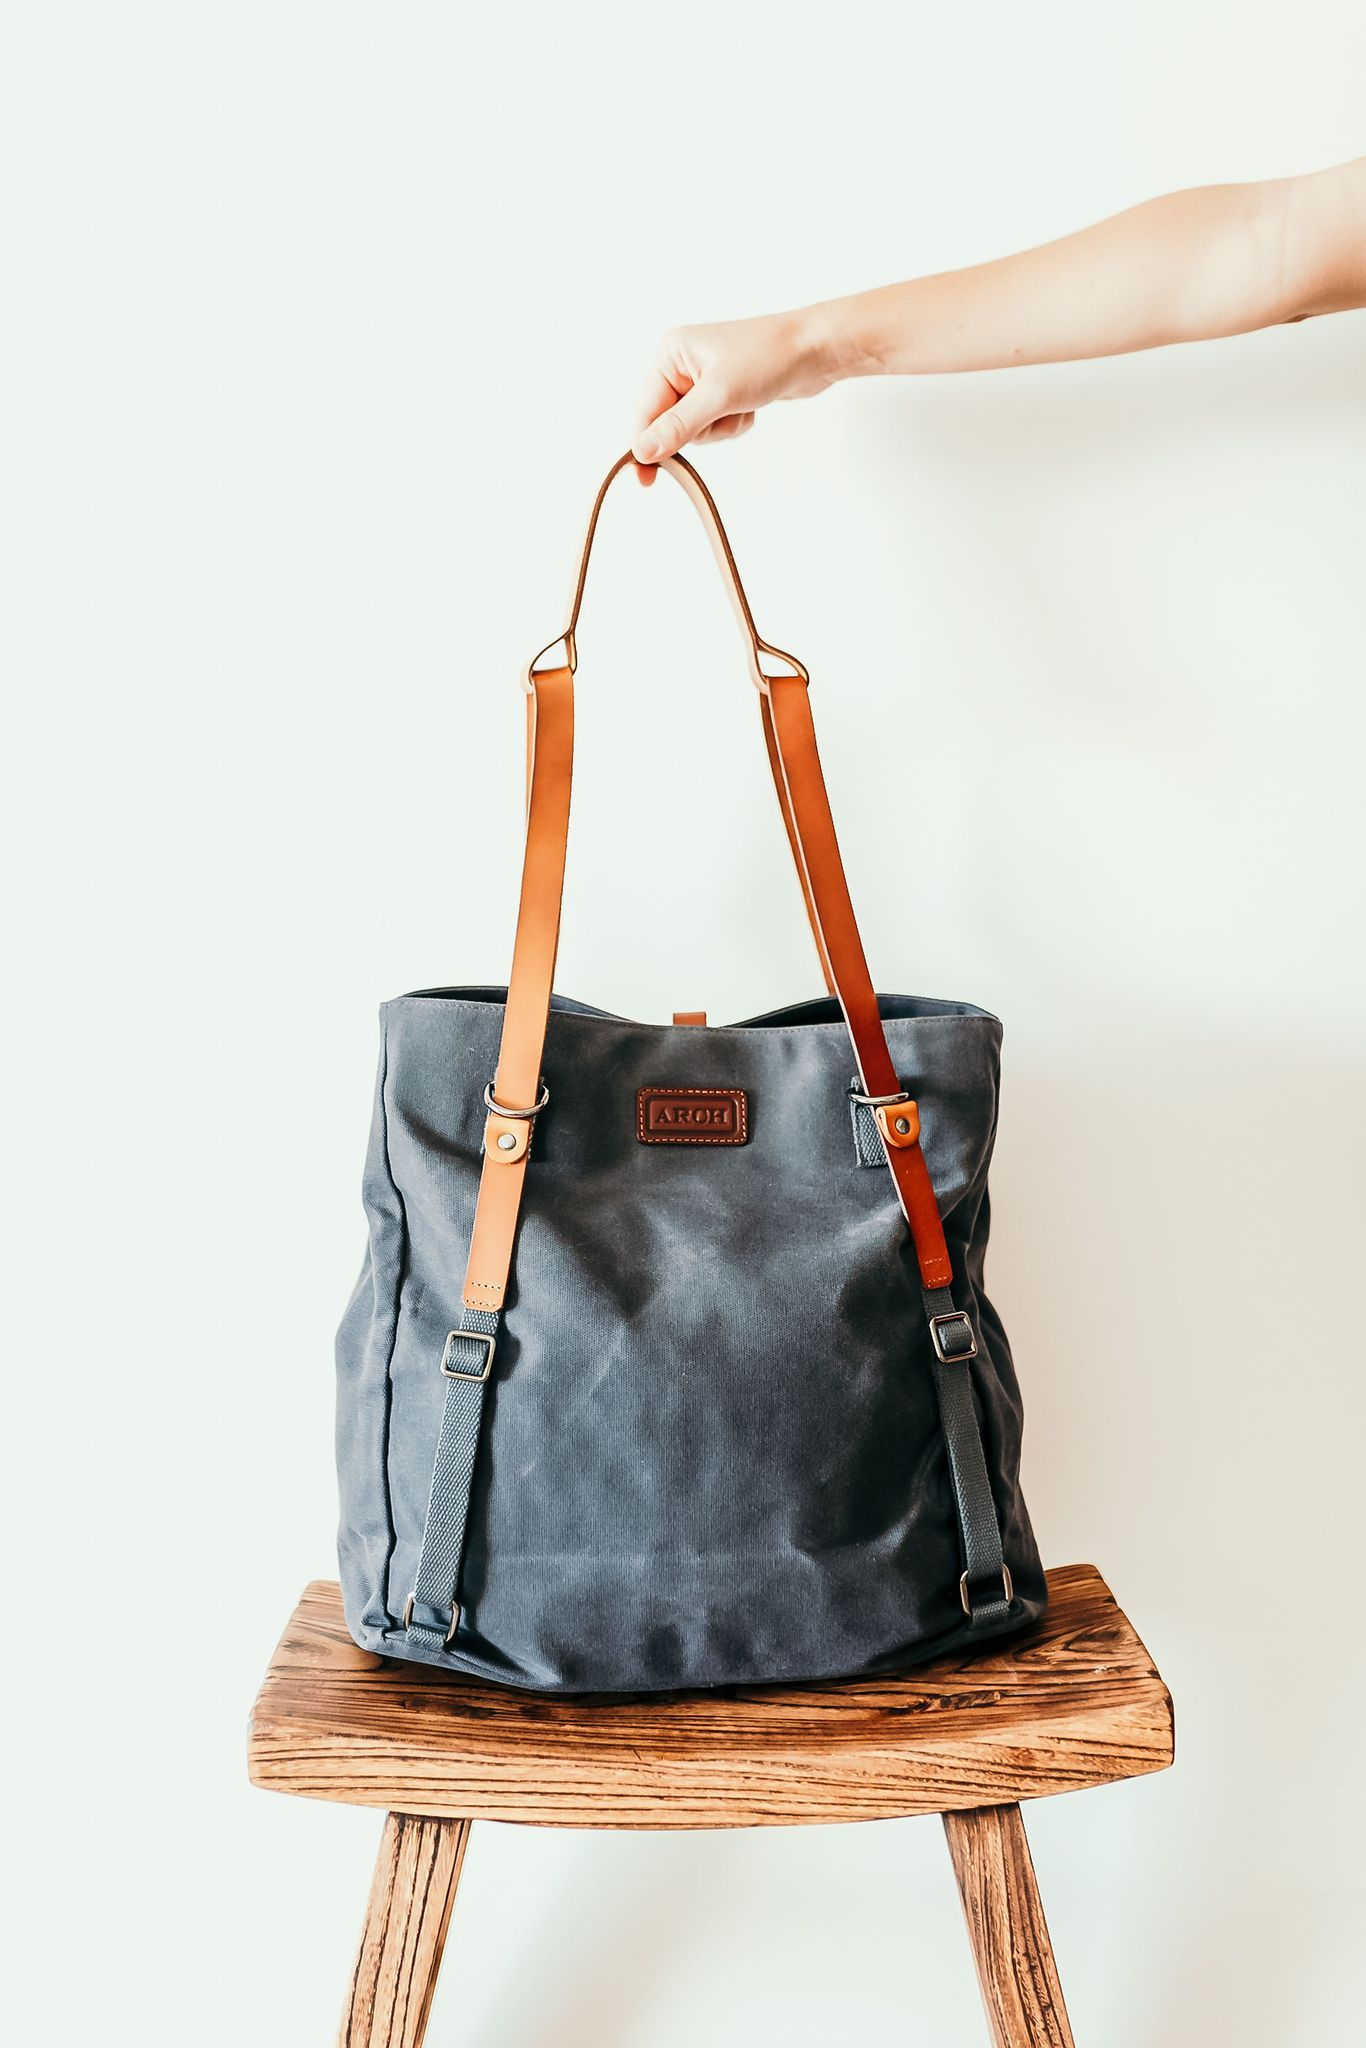 Diaper Bag Waxed Canvas leather Tote Bag convertible Backpack Black